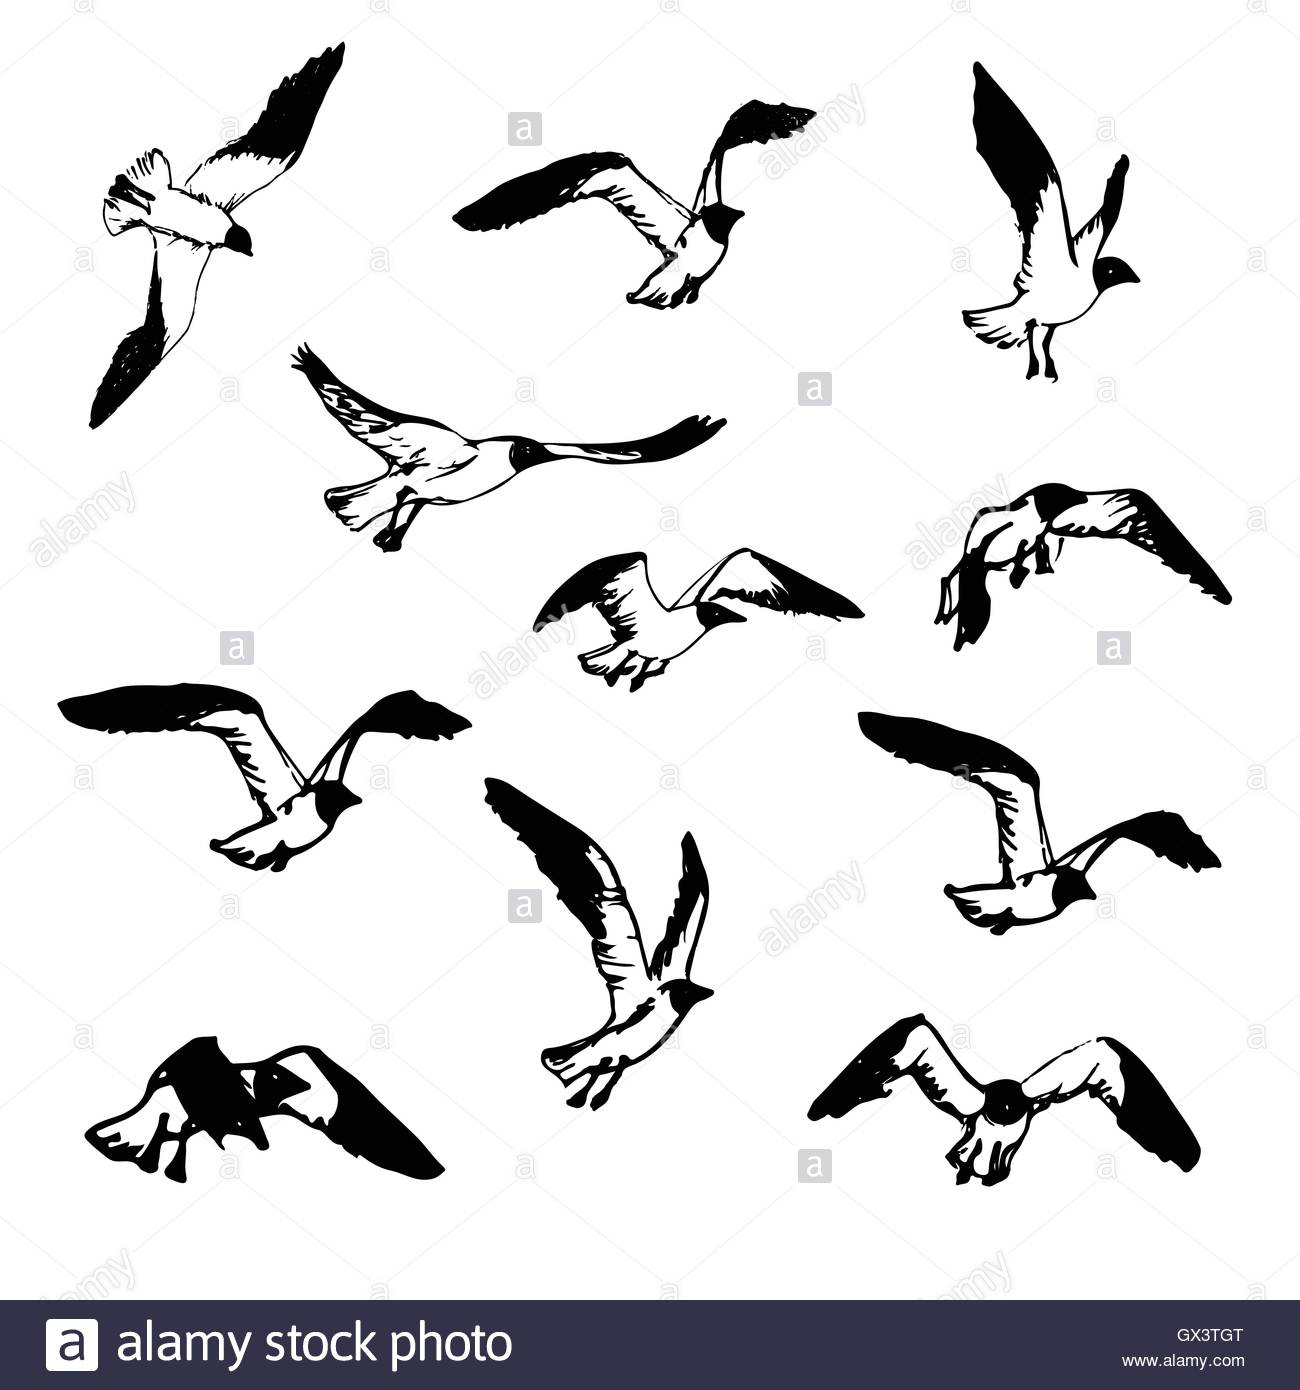 1300x1390 Hand Drawn Flying Seagulls. Black And White Illustration Sketch